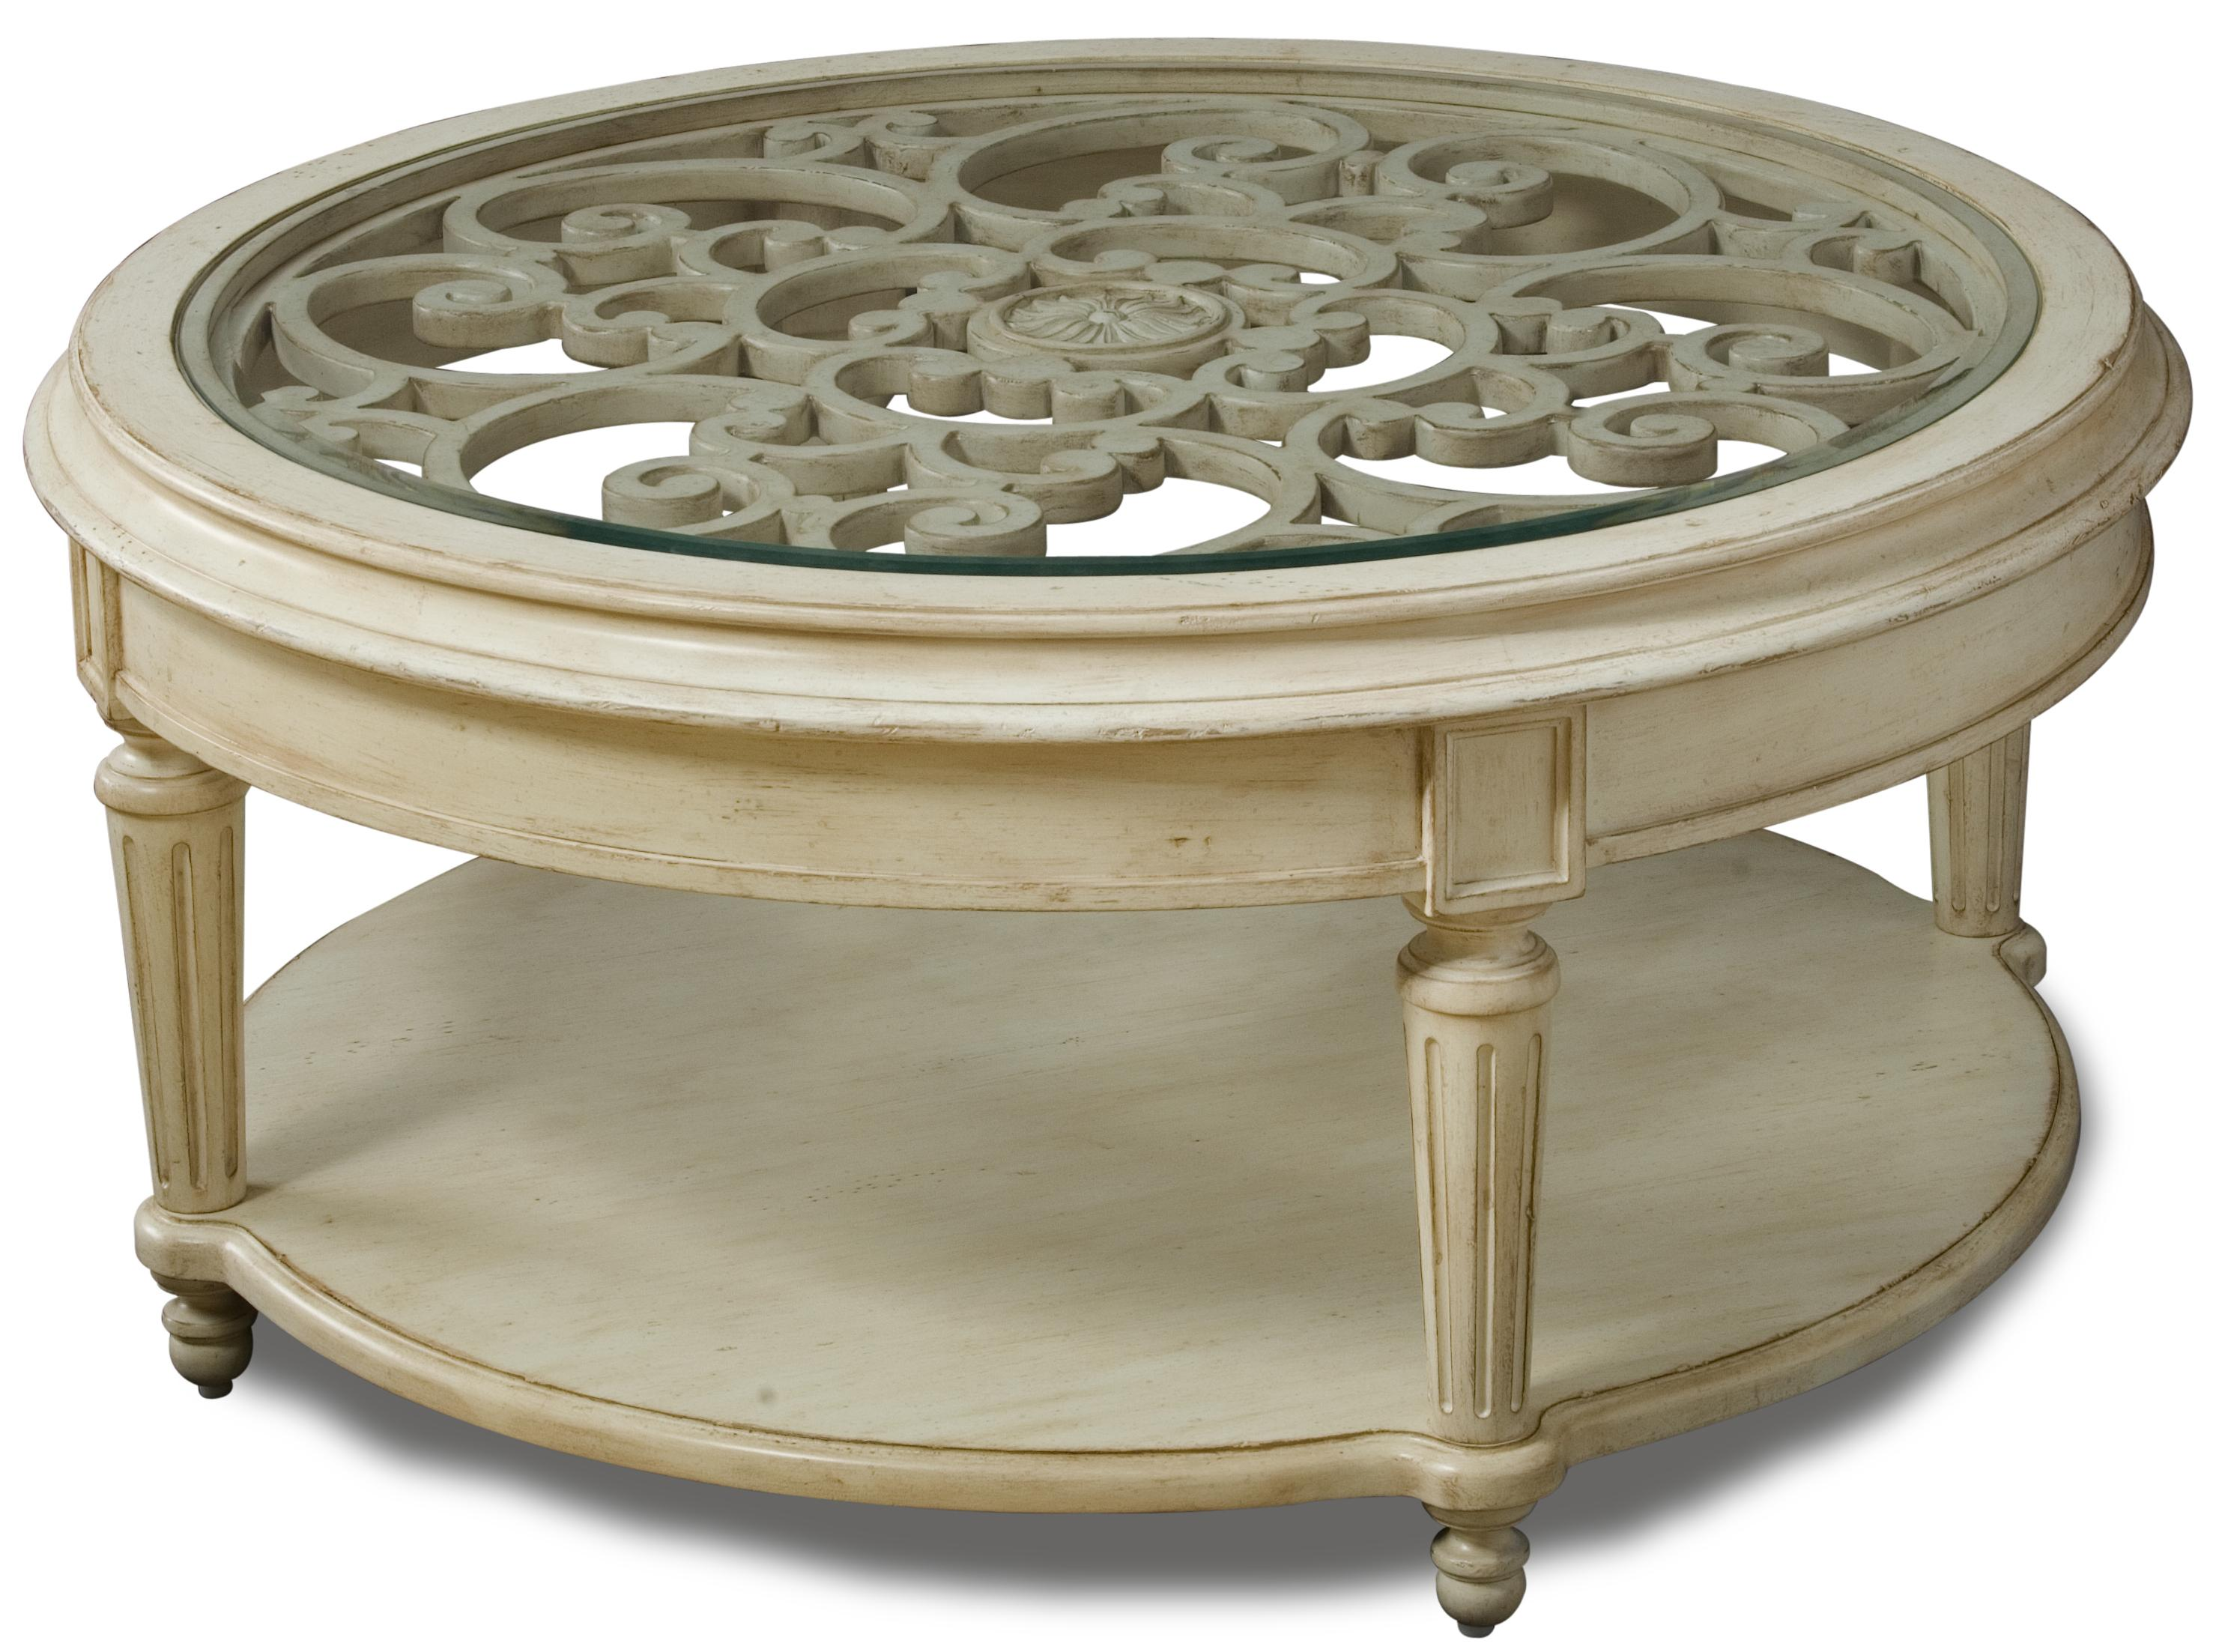 Carved Round Cocktail Table with Glass Top by A.R.T